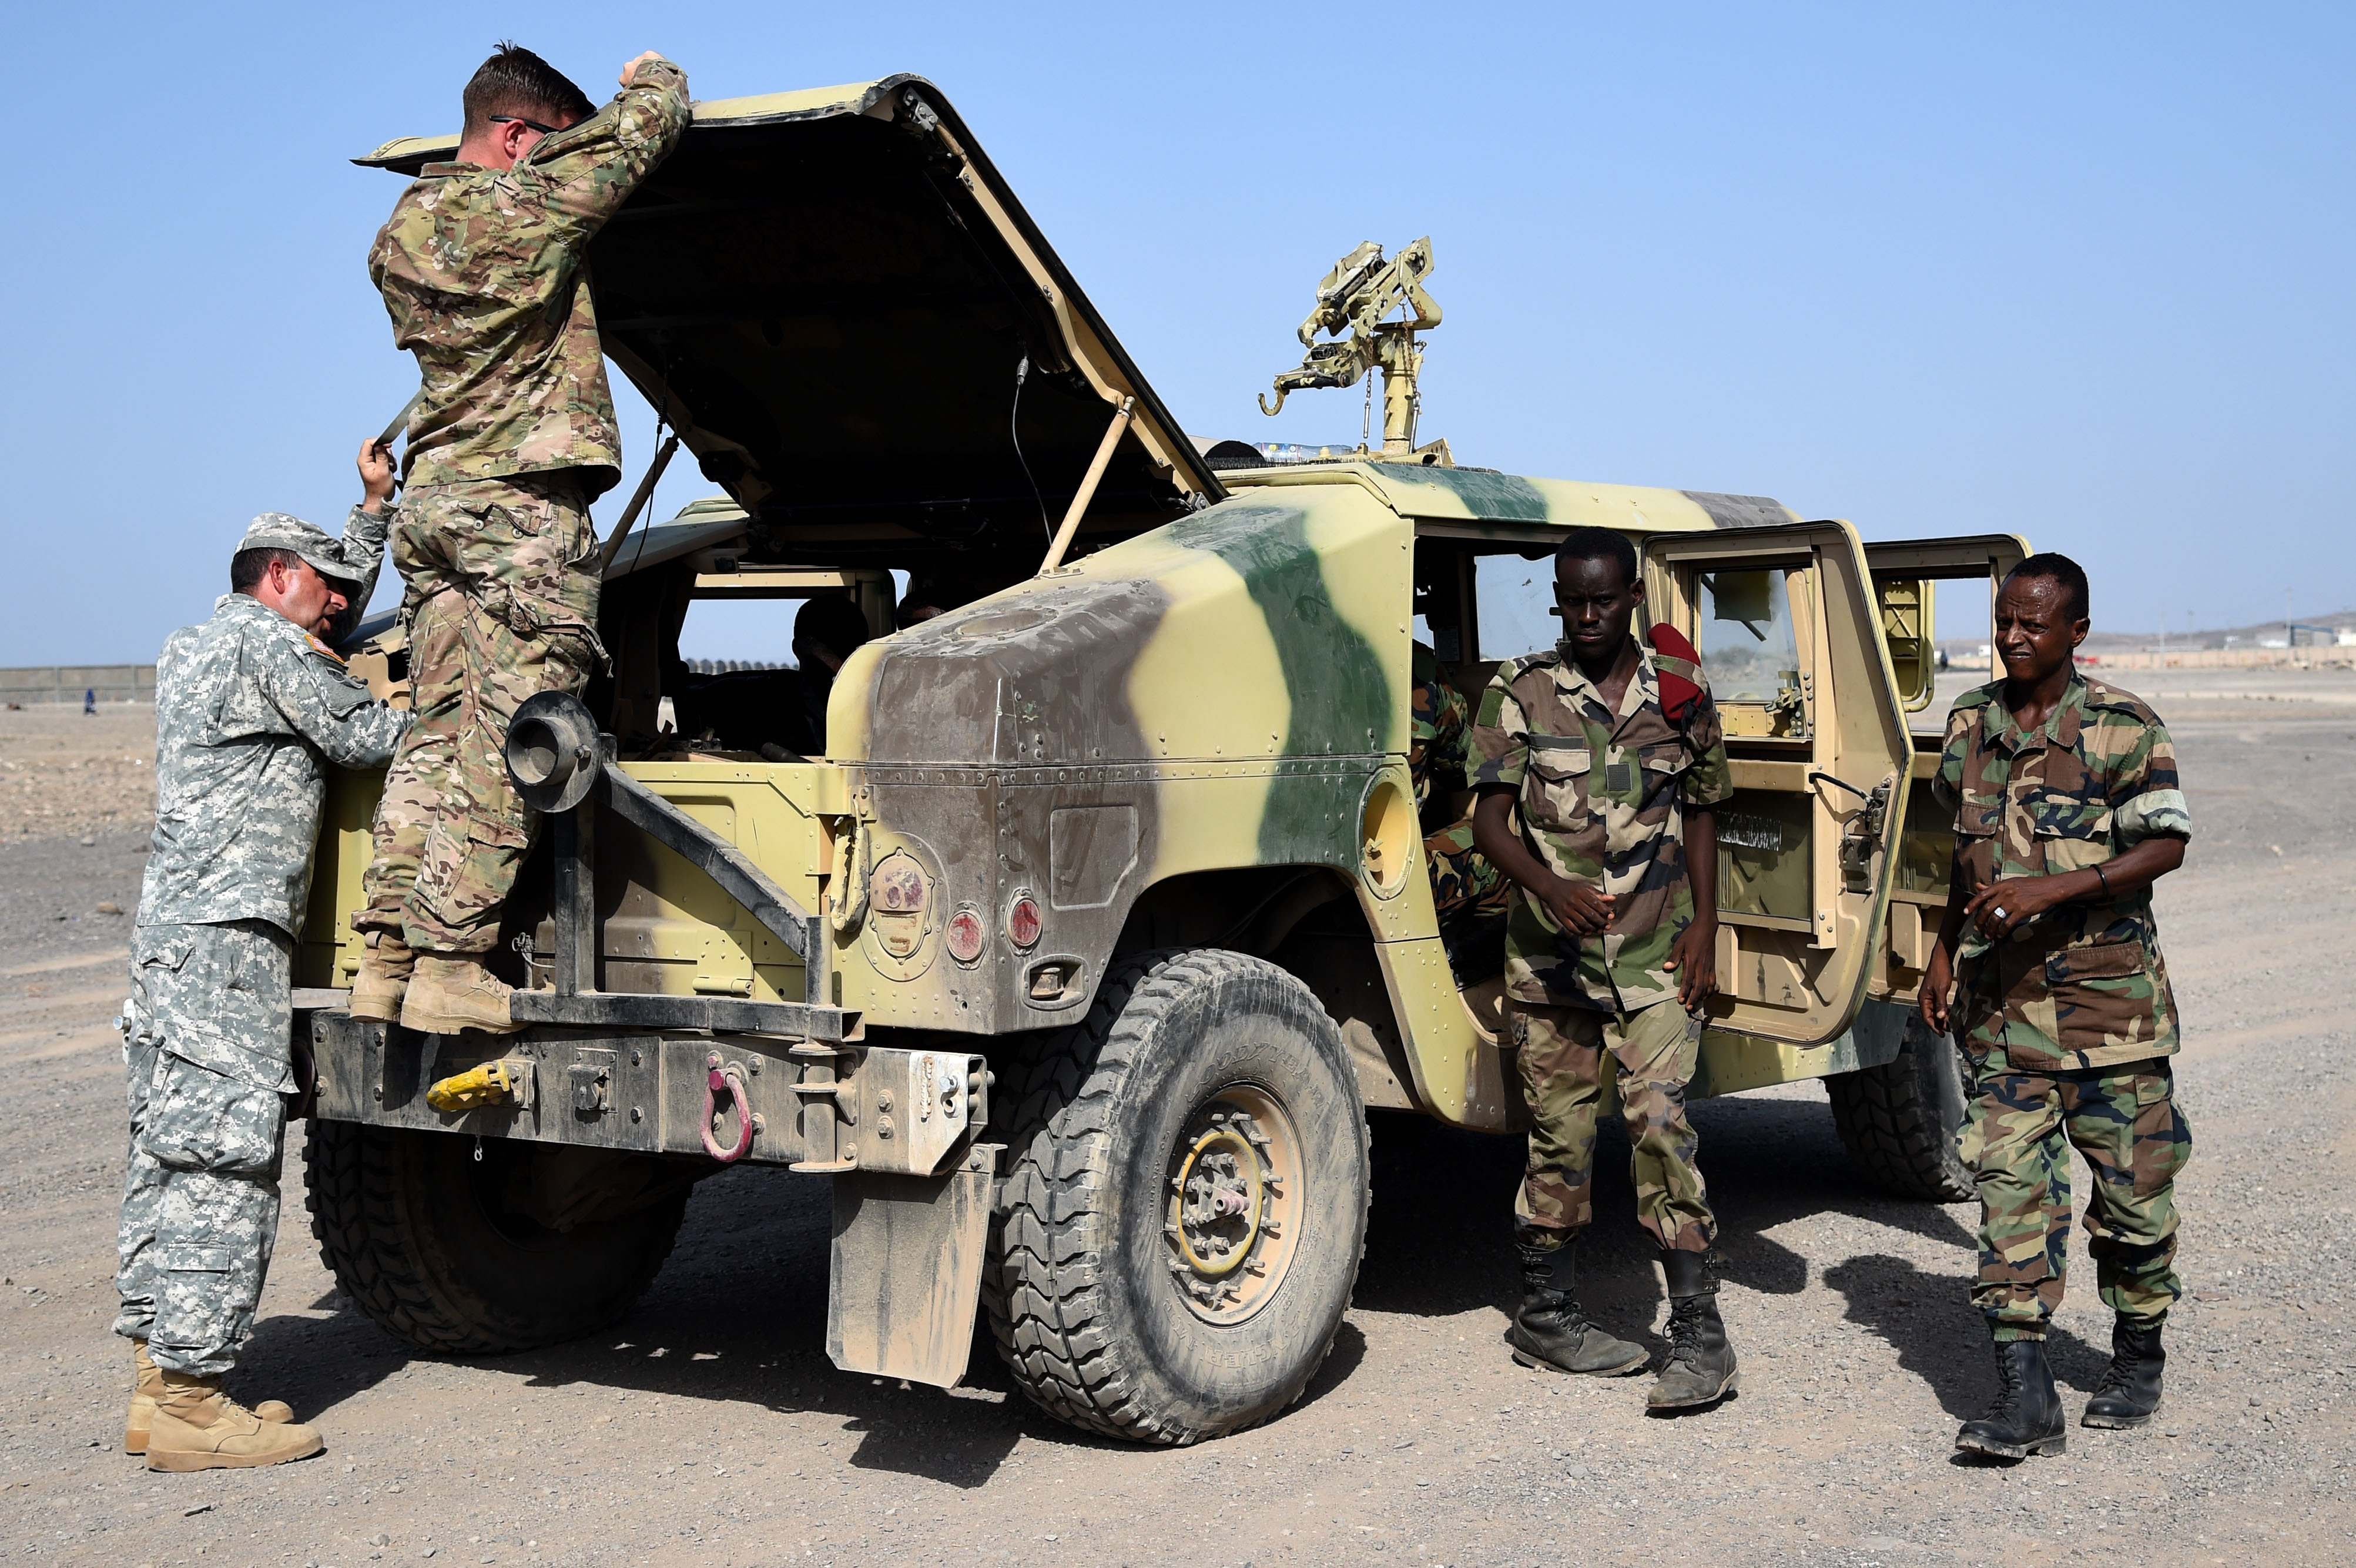 CAMP CHEIK OSMAN, Djibouti – Djiboutian Armed Forces (FAD) Soldiers prepare their Humvee for the final test after completing a five-month training course instructed by the U.S. Army Regionally Aligned Forces Soldiers, May 16, 2016, at Camp Cheik Osman, Djibouti. The FAD soldiers tested the skills they learned by demonstrating their reactions to various mock situations from convoying through a road block, identifying mock roadside bombs, medical care, and vehicle recovery. (U.S. Air Force photo by Staff Sgt. Tiffany DeNault/Released)